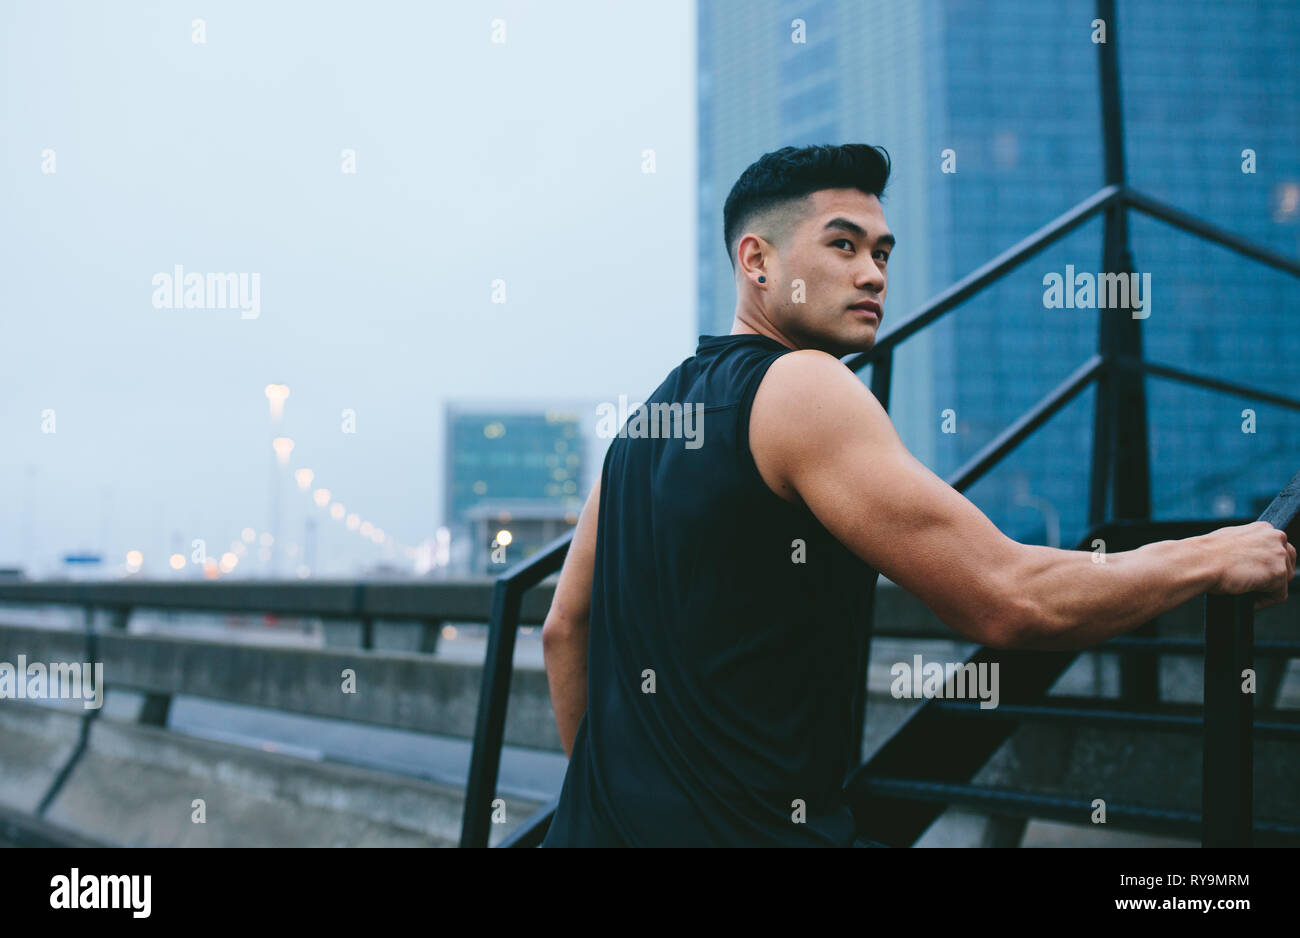 Man in walking up the stairs and looking away. Muscular man in sports clothing climbing up steps outdoors. - Stock Image